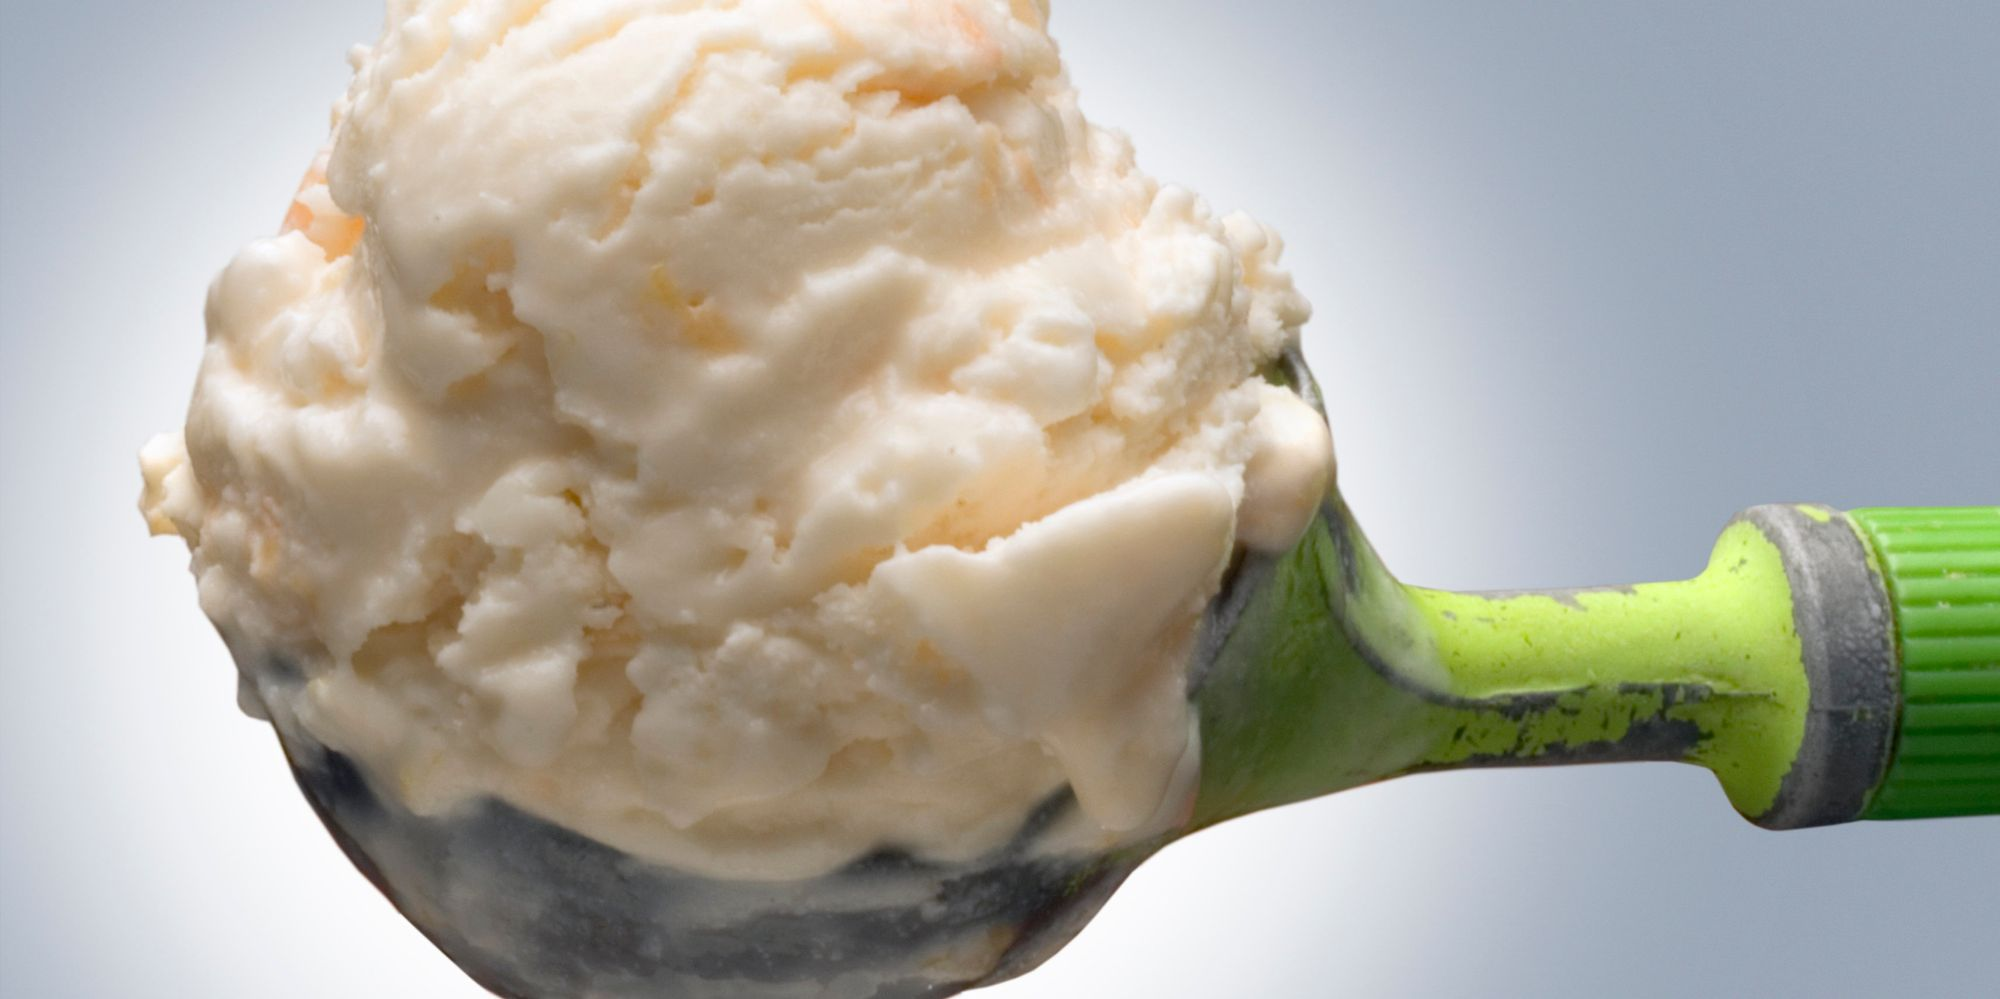 That Ice Cream You're Buying Might Not Be Ice Cream At All ...